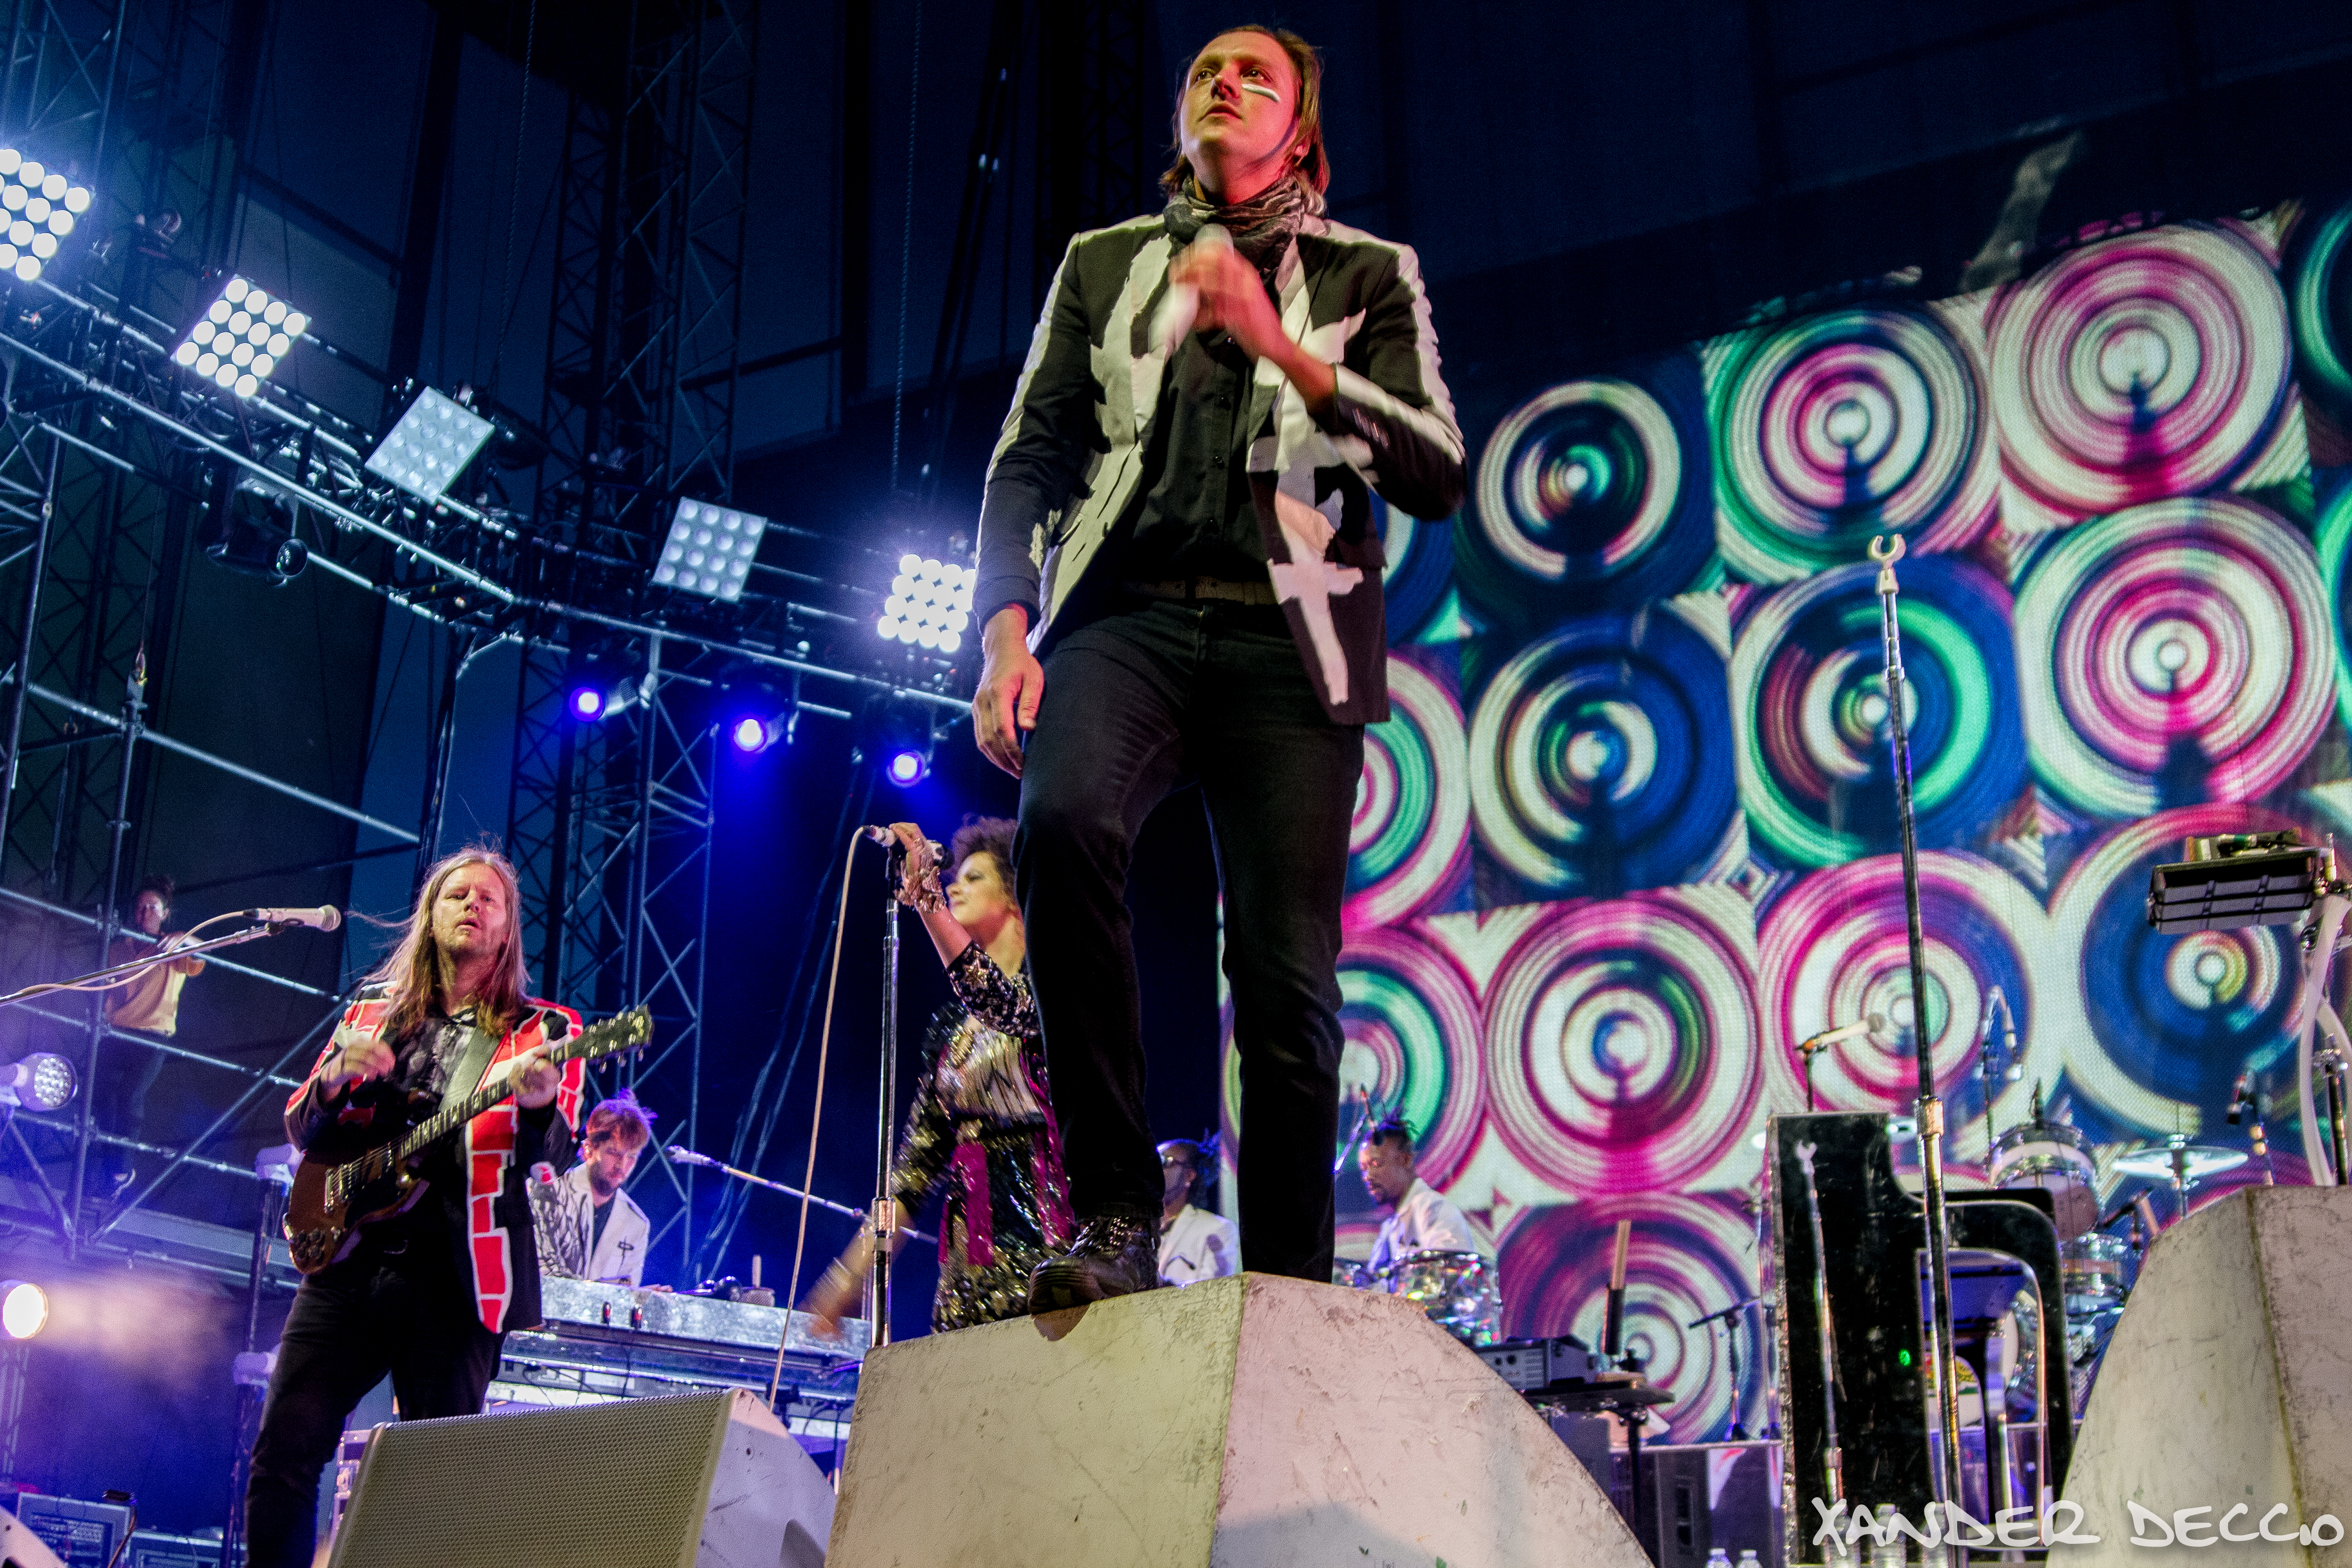 Arcade Fire Live at The Gorge (Photo by Xander Deccio)